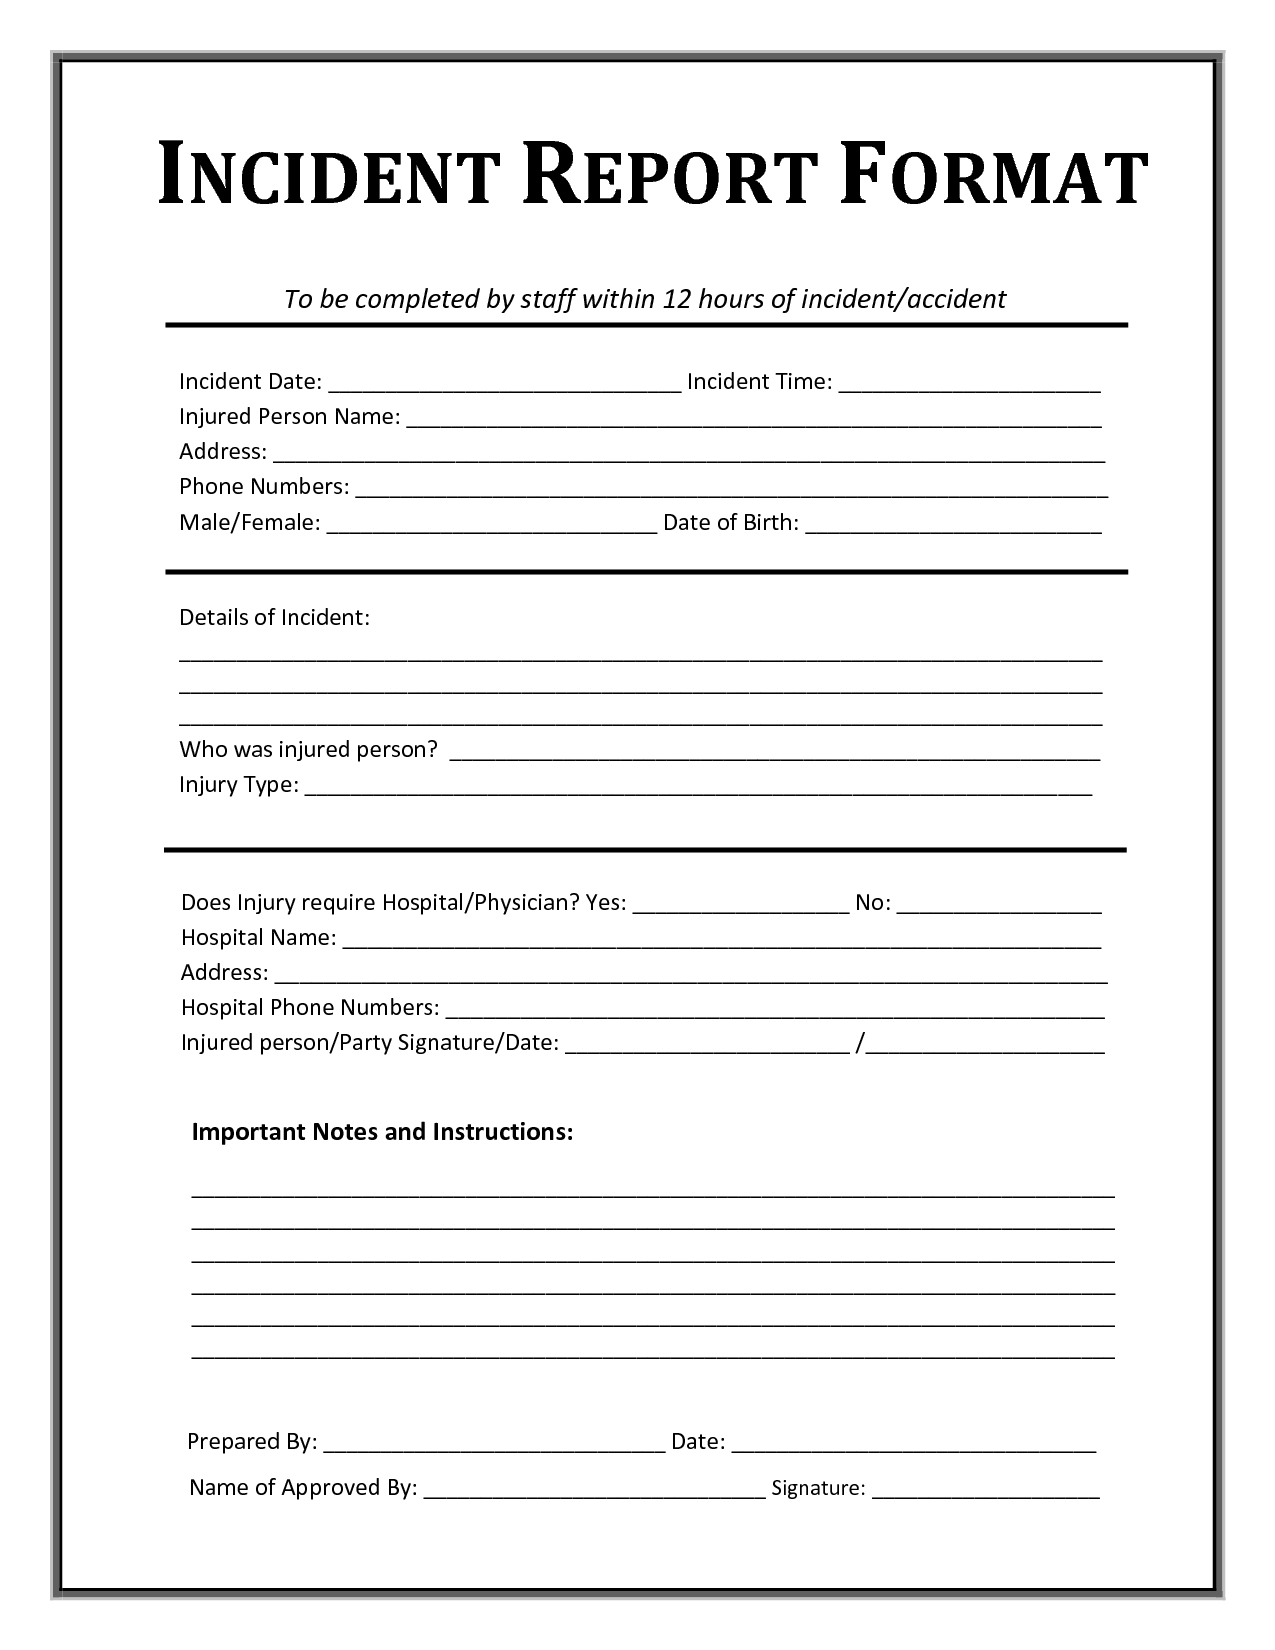 Incident Report Form Template With Injury Incident Report Form Template